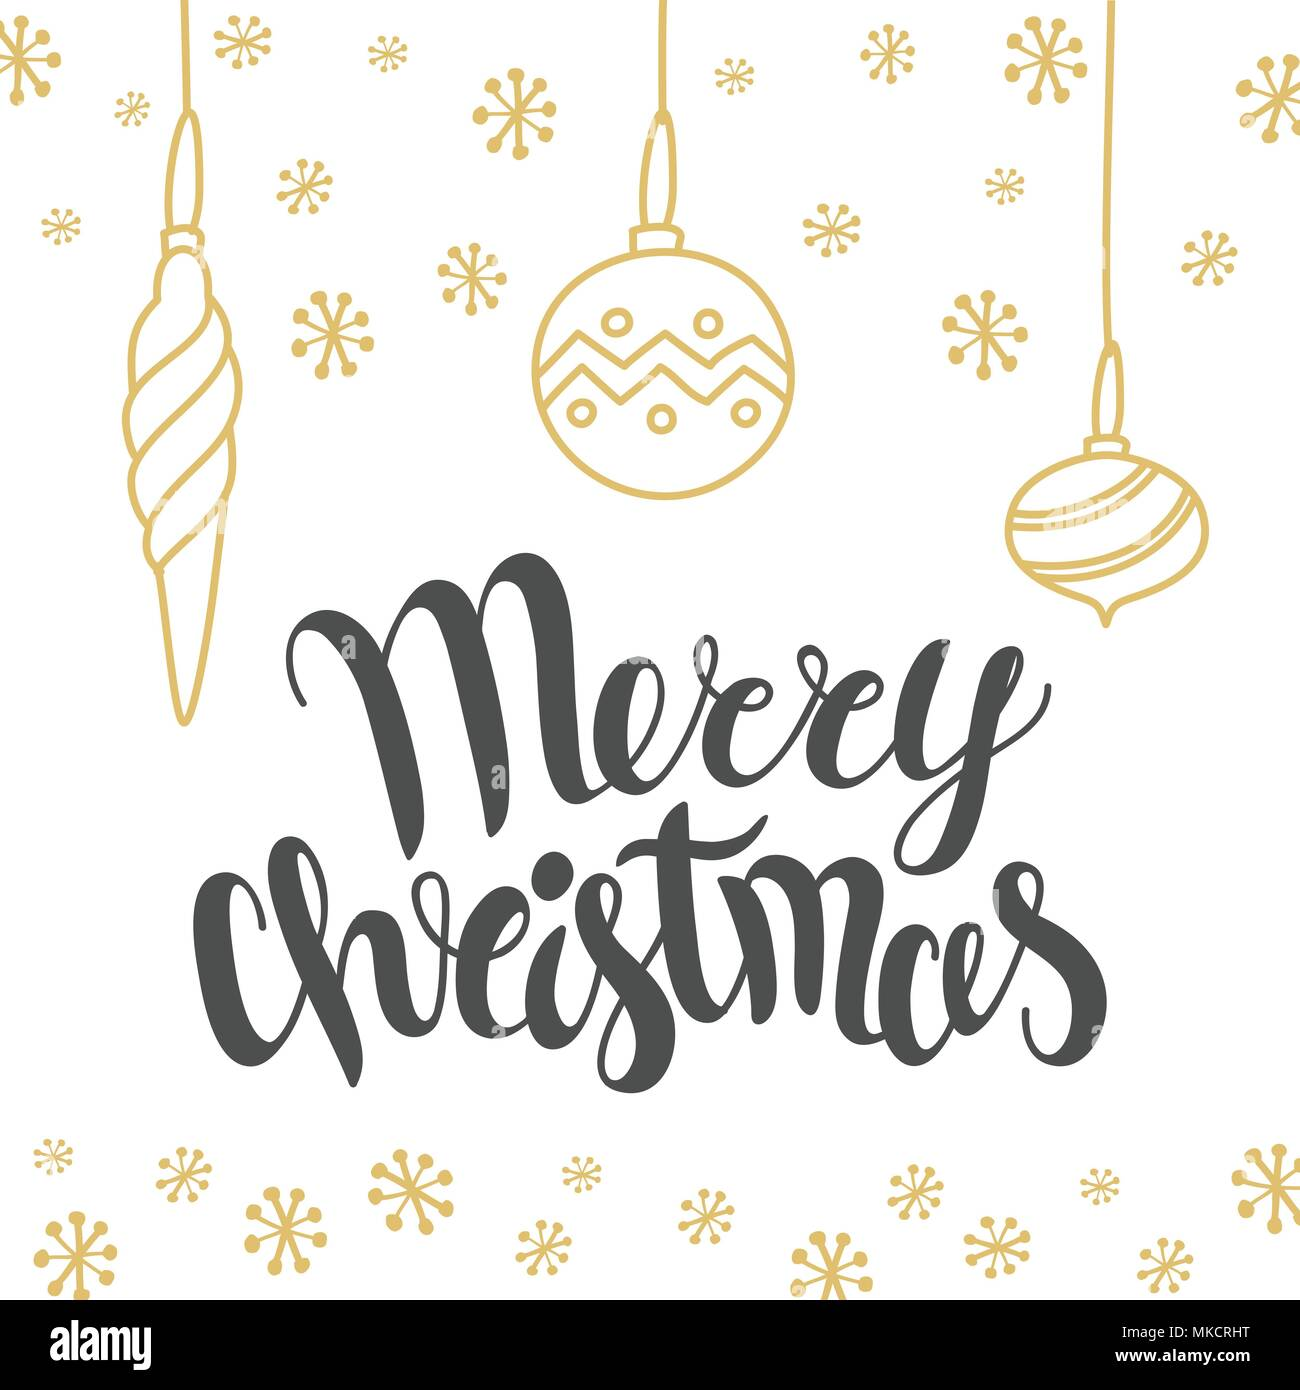 Christmas Card Design With Lettering Merry Christmas And Hand